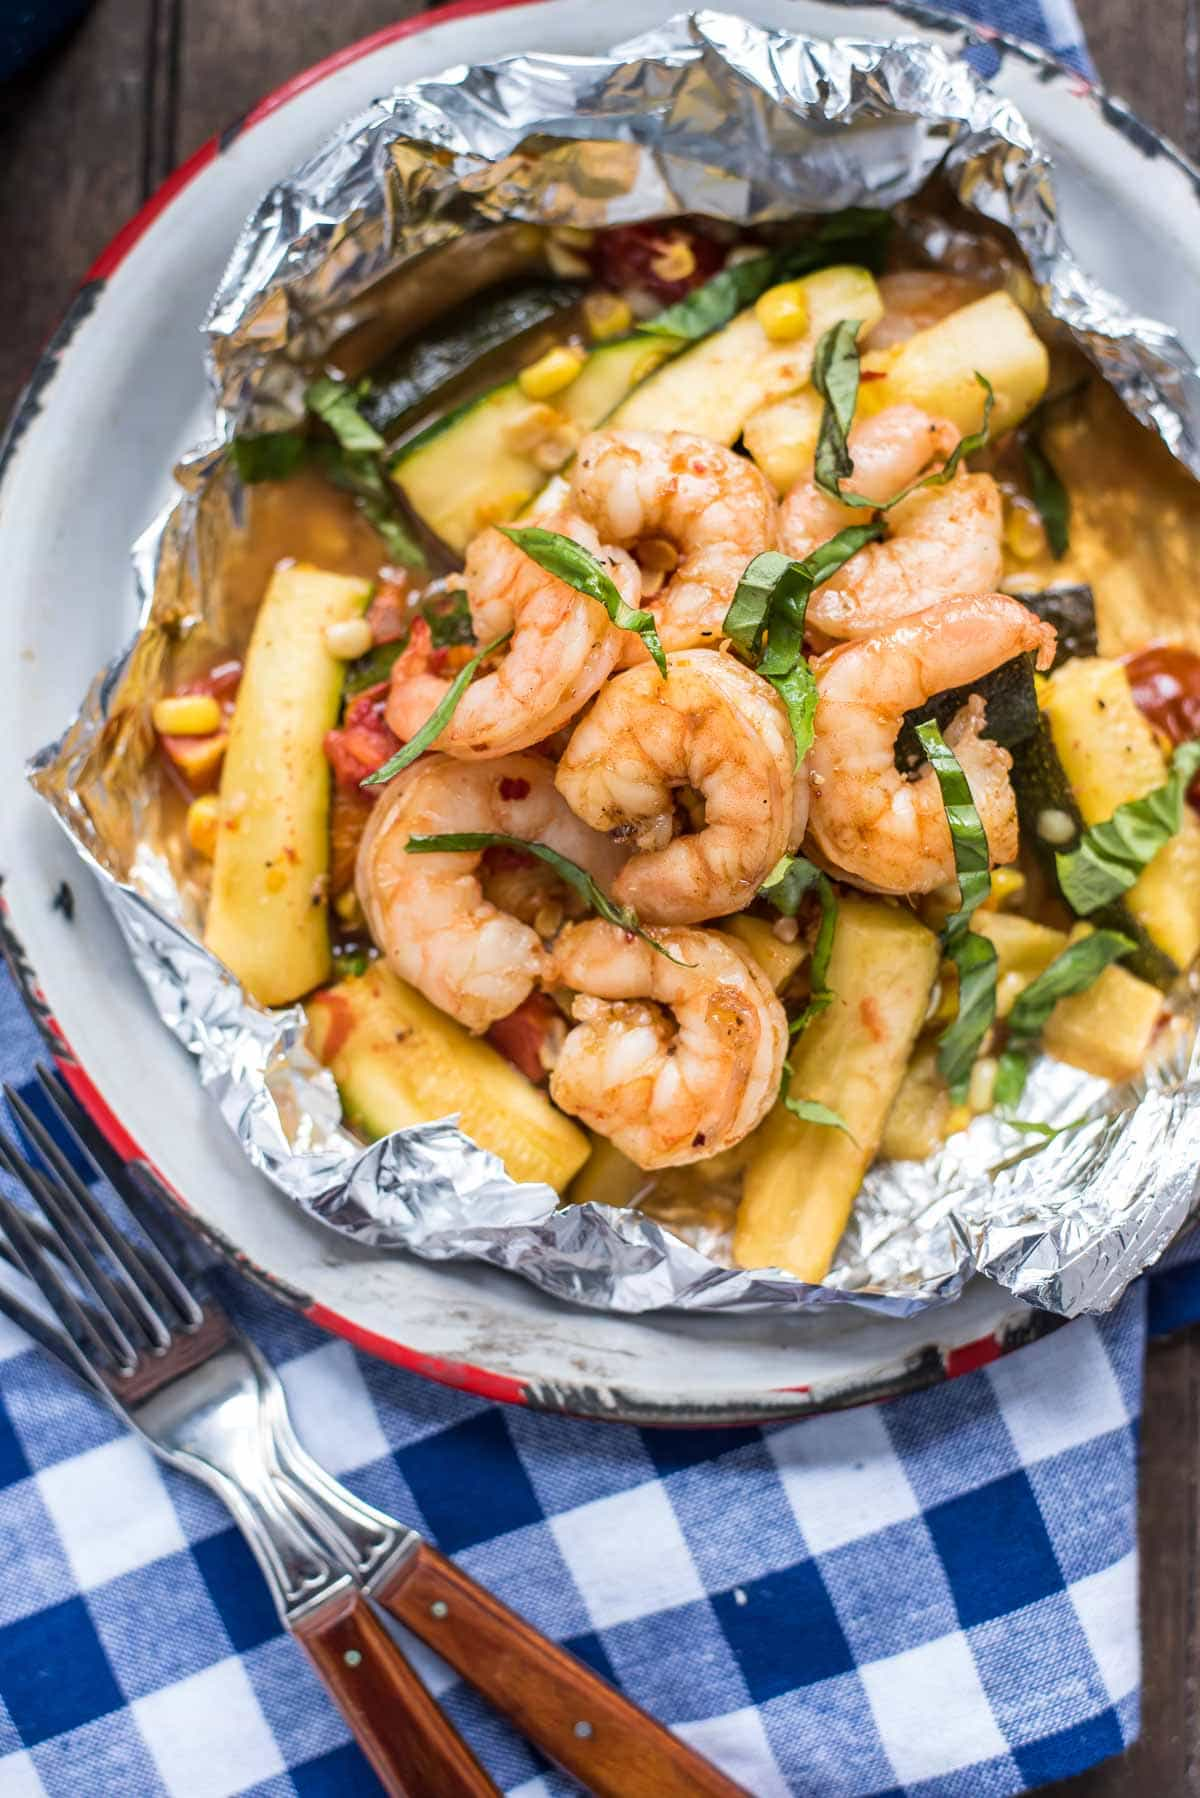 These Honey Garlic Shrimp Foil Packets are loaded with zucchini, corn, and tomatoes in a killer sweet and savory glaze.